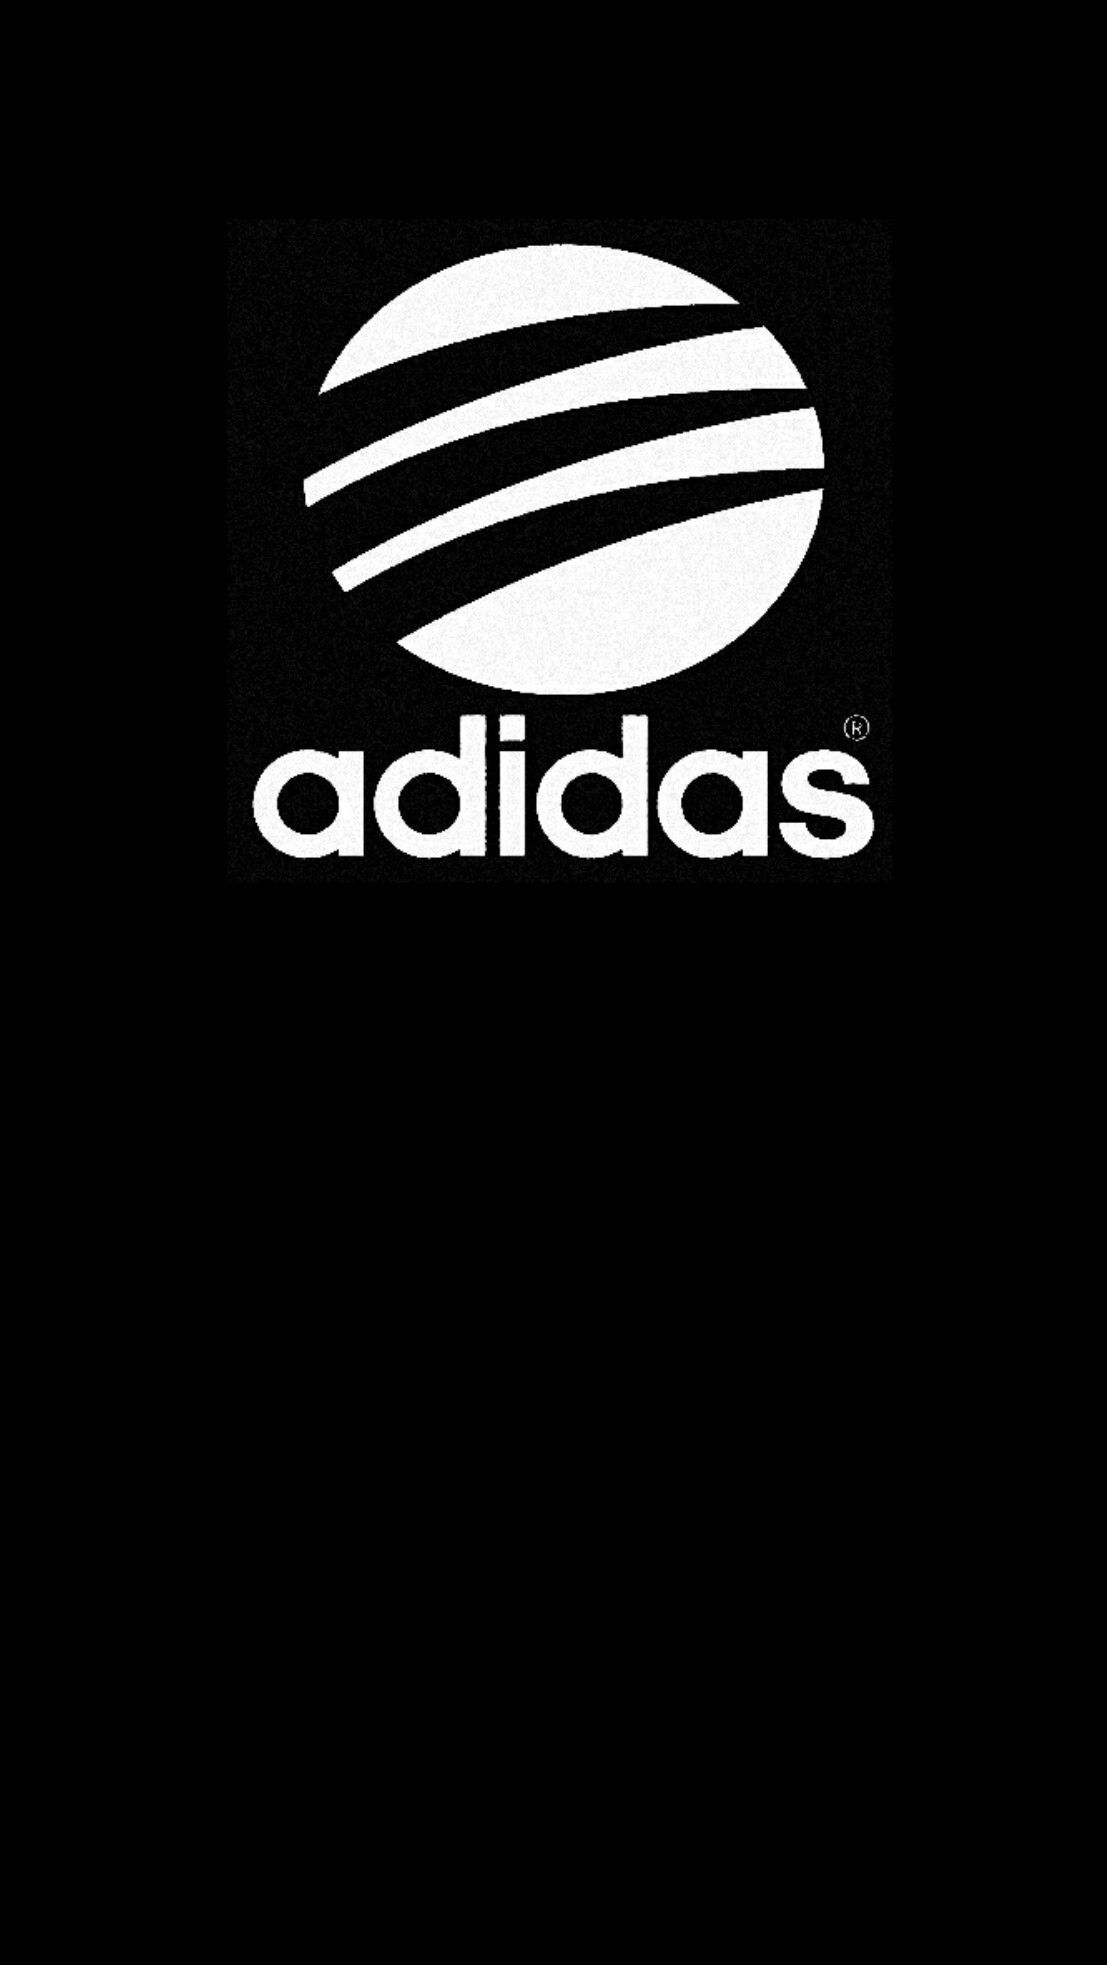 1107x1965 78+ Adidas Iphone Wallpapers on WallpaperPlay